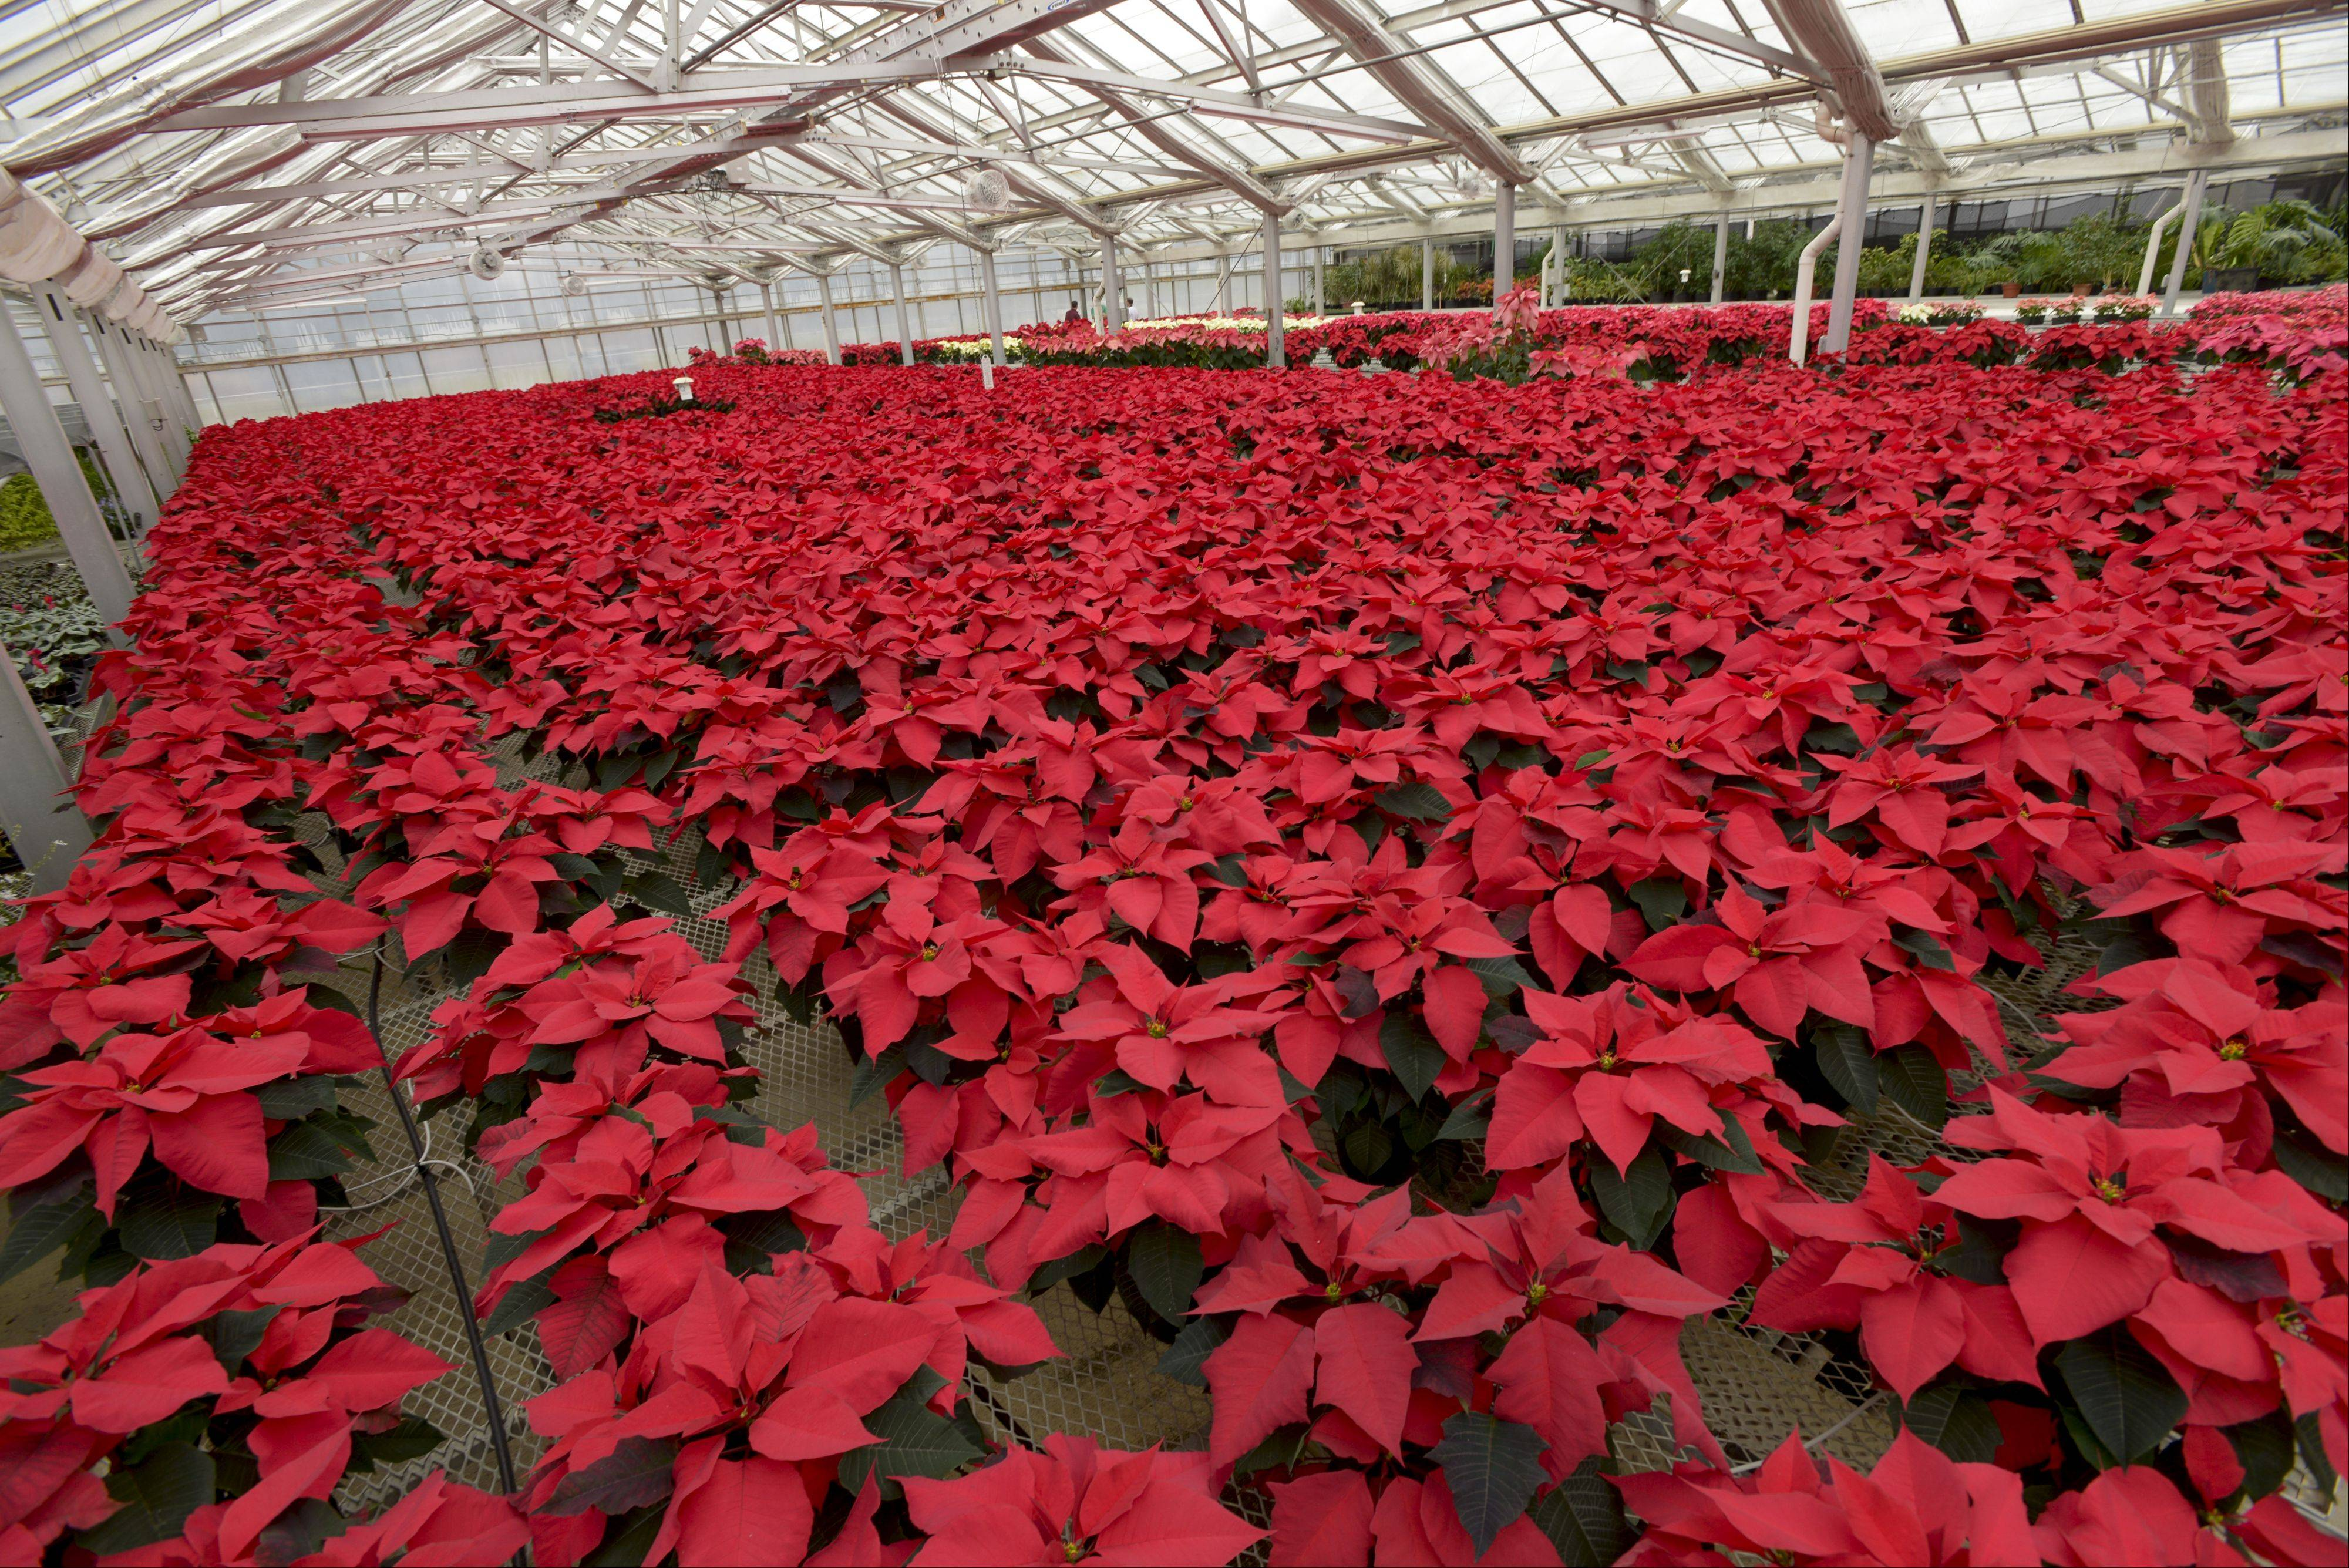 More than a dozen varieties of poinsettias were on display Tuesday during the annual �Shades of Crimson� event at the Cantigny Park greenhouse.